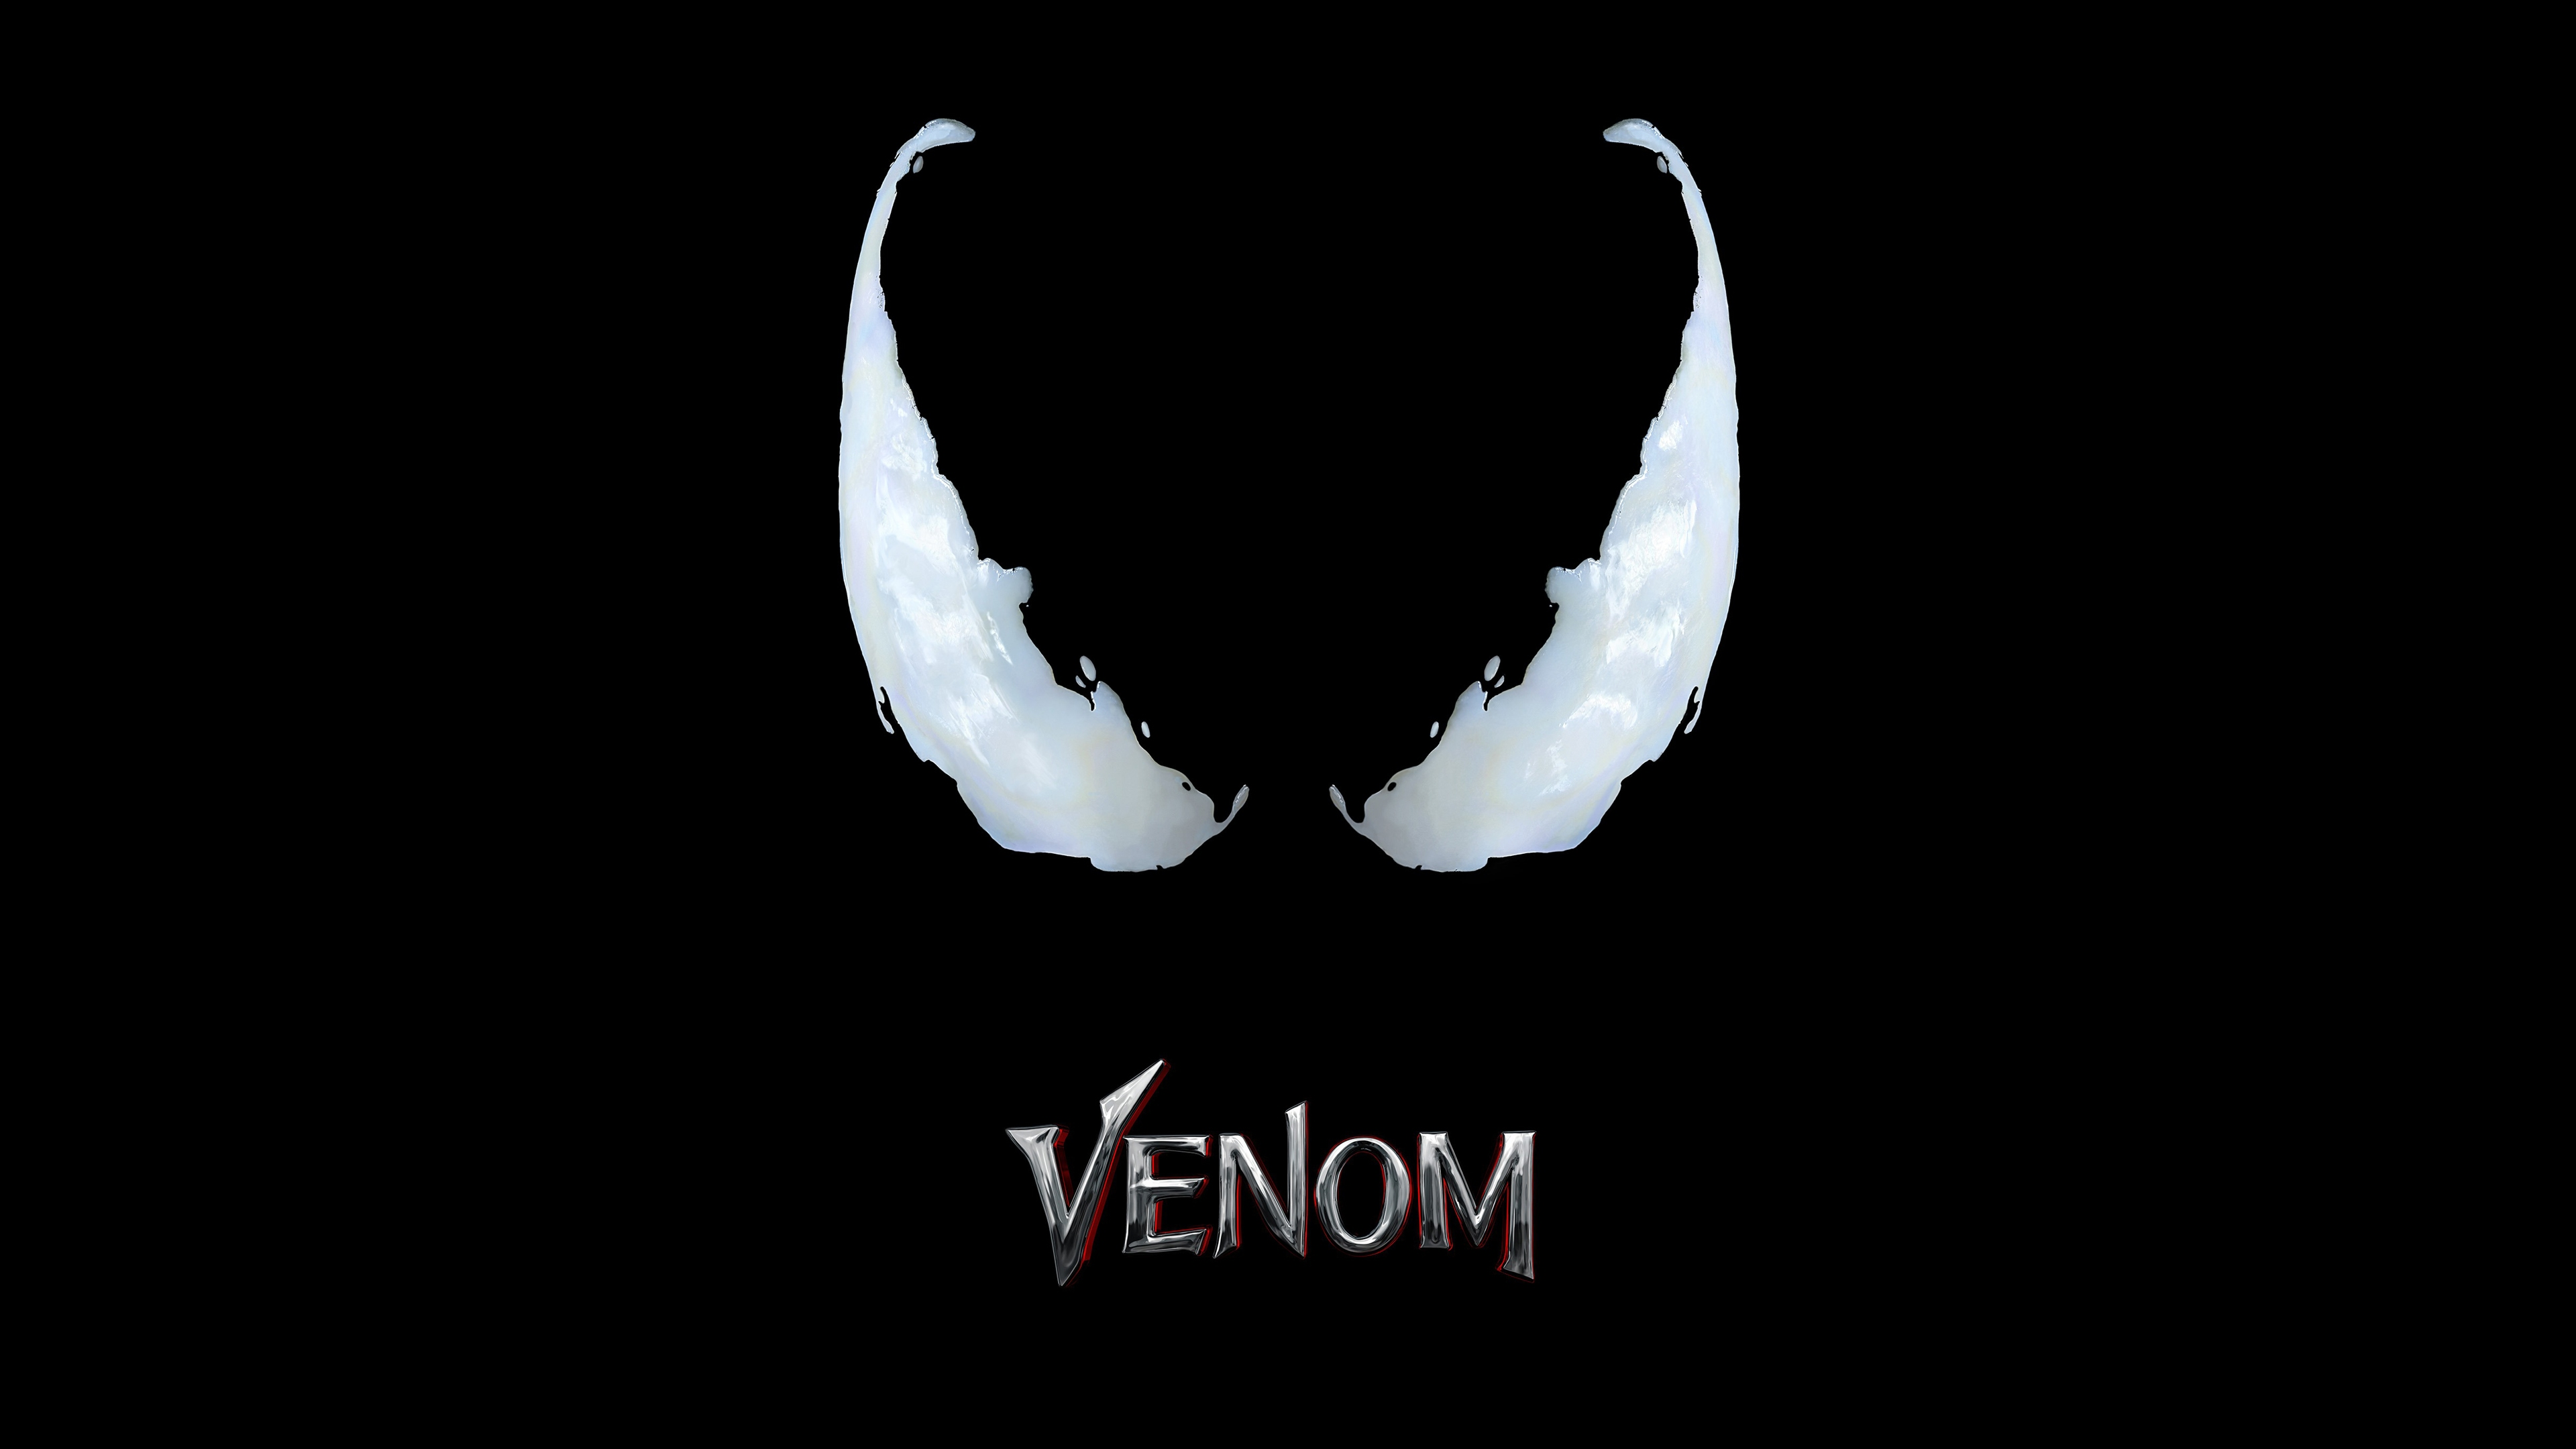 1360x768 venom movie logo 4k laptop hd hd 4k wallpapers images published on february 10 2018 original resolution voltagebd Image collections